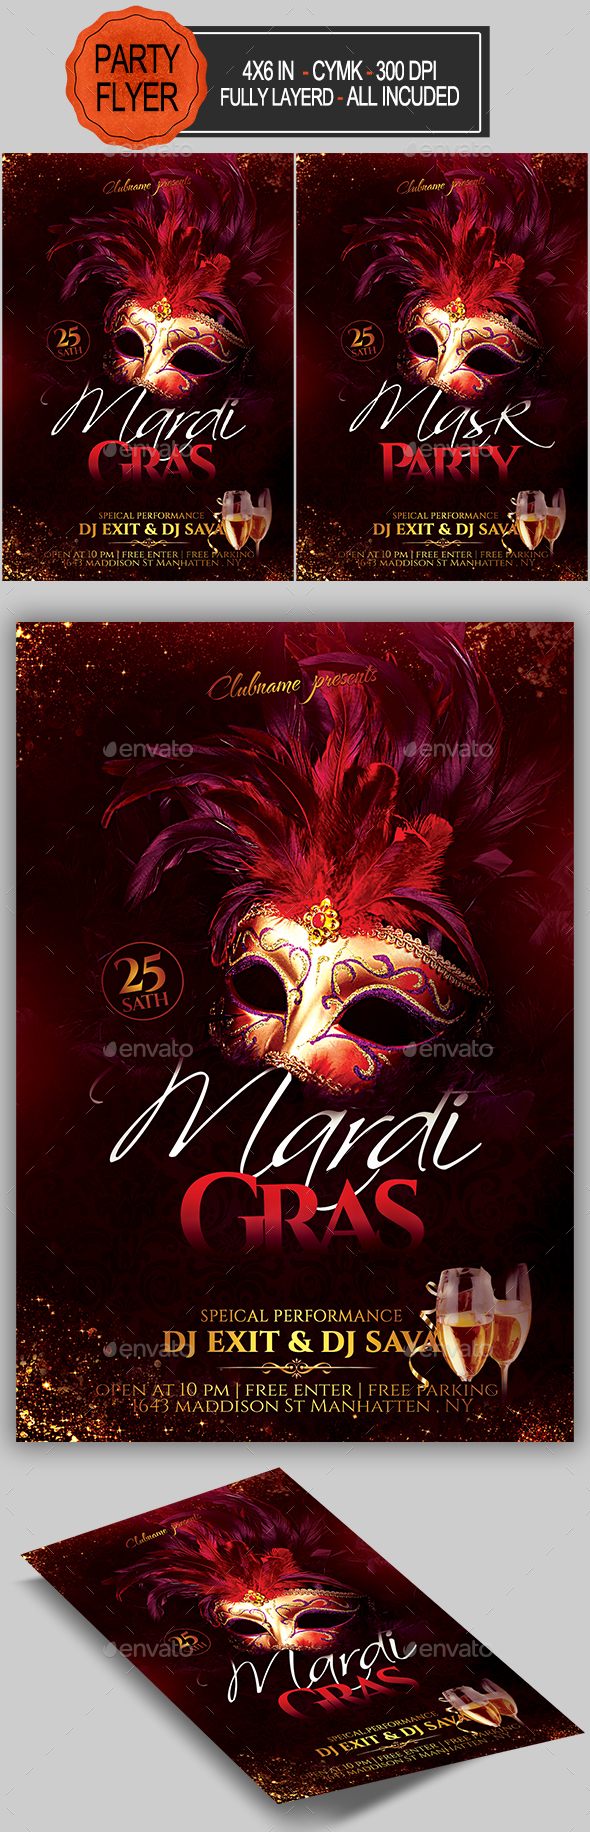 Carnival Mardi Gras Flyer - Clubs & Parties Events